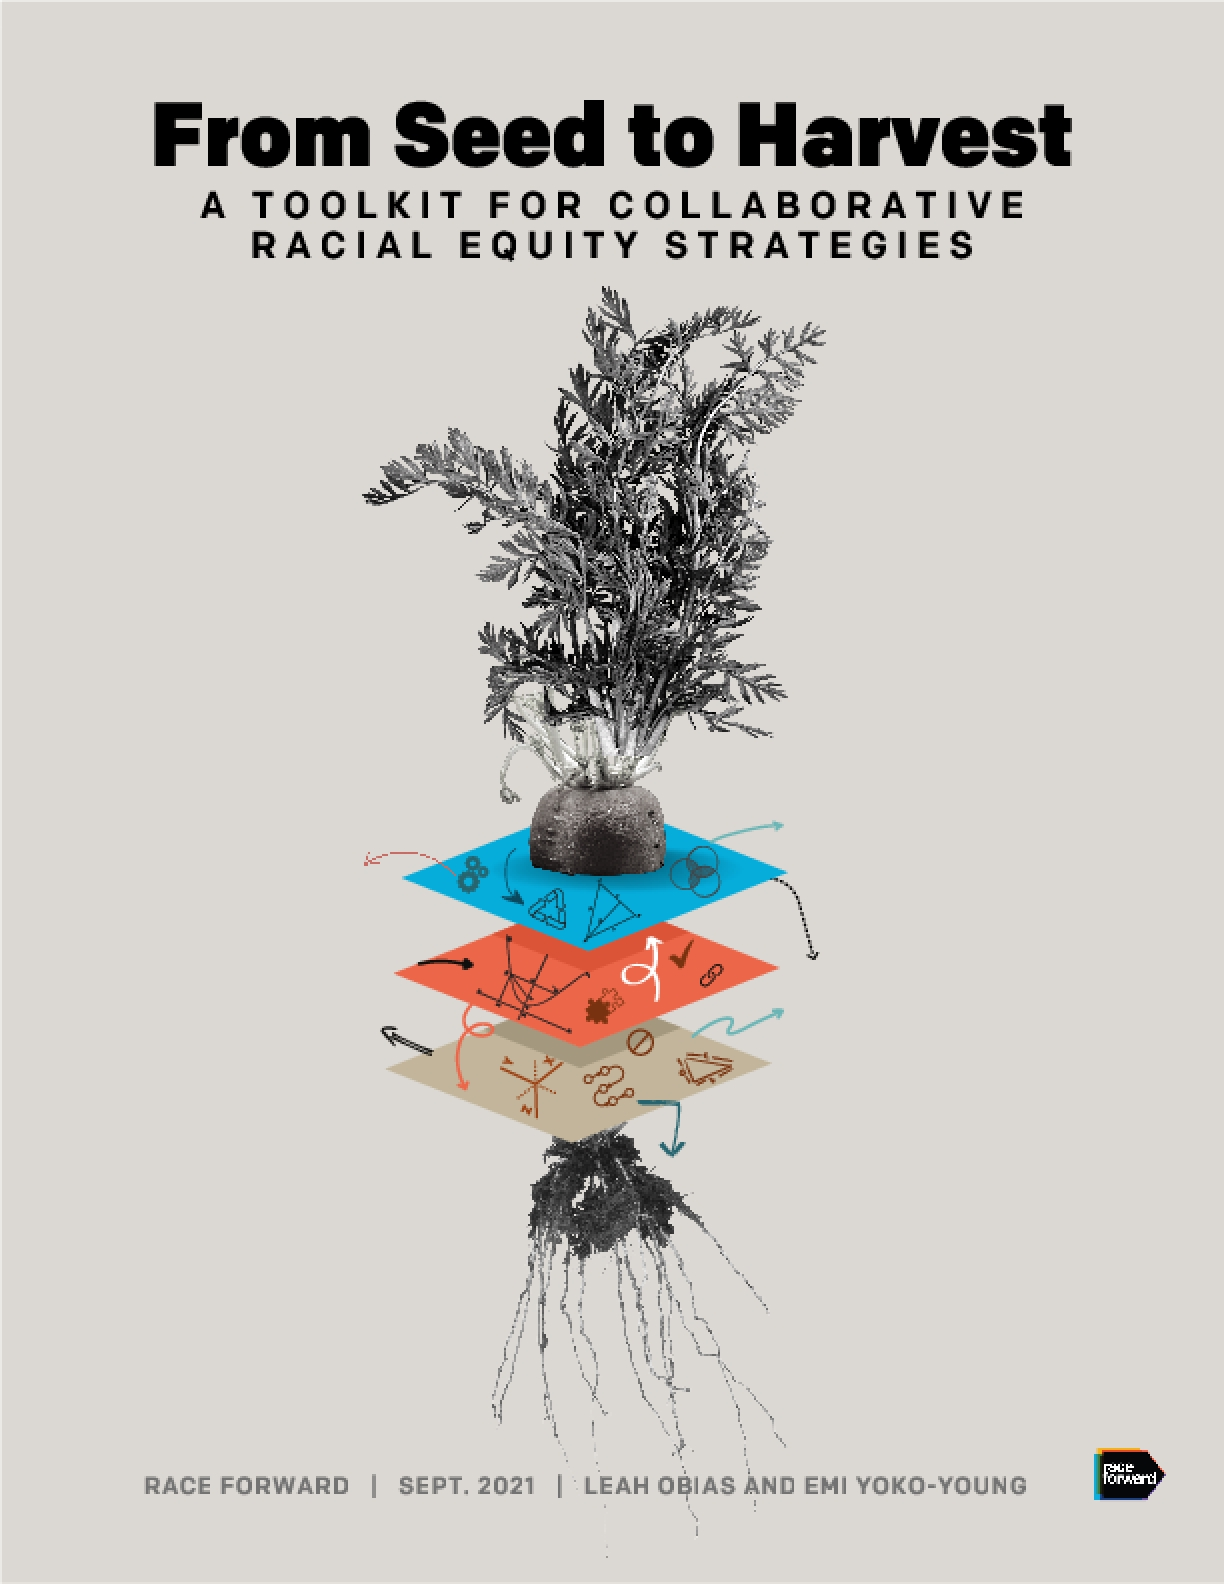 From Seed to Harvest: A Toolkit for Collaborative Racial Equity Strategies